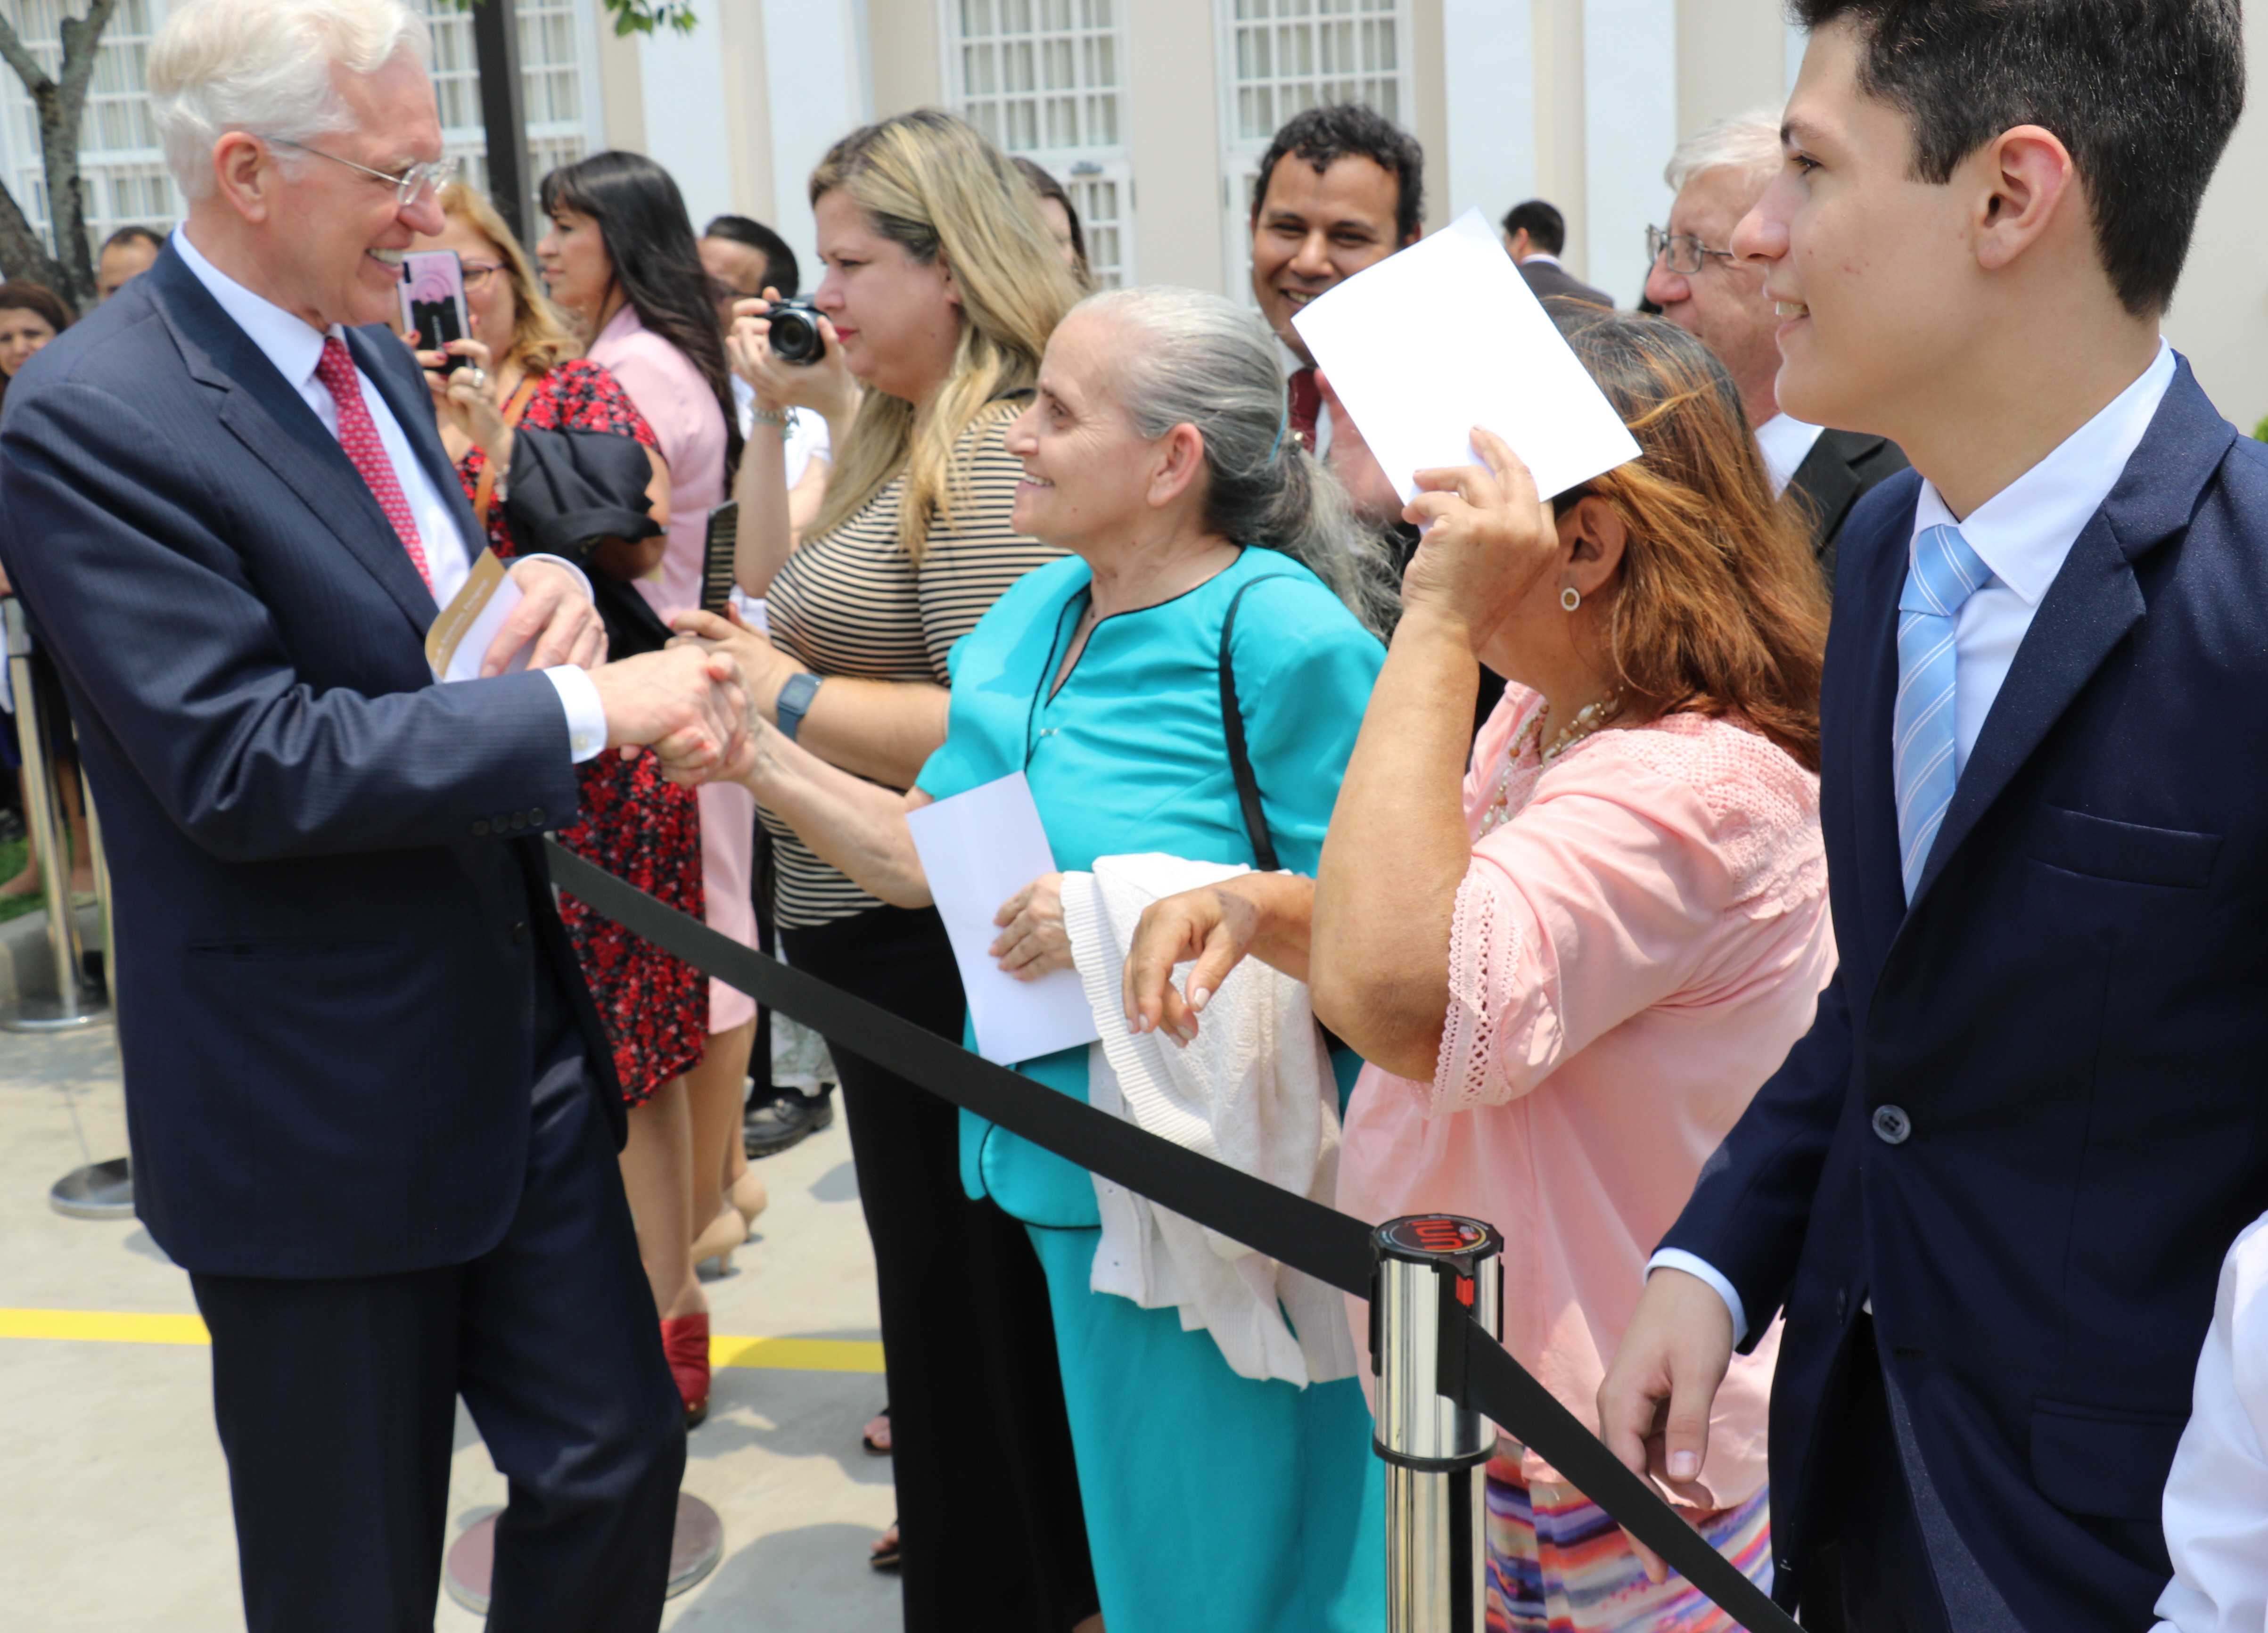 Elder D. Todd Christofferson shakes hands with a Latter-day Saint woman following the Nov. 3, 2019, rededication of the Asuncion Paraguay Temple.